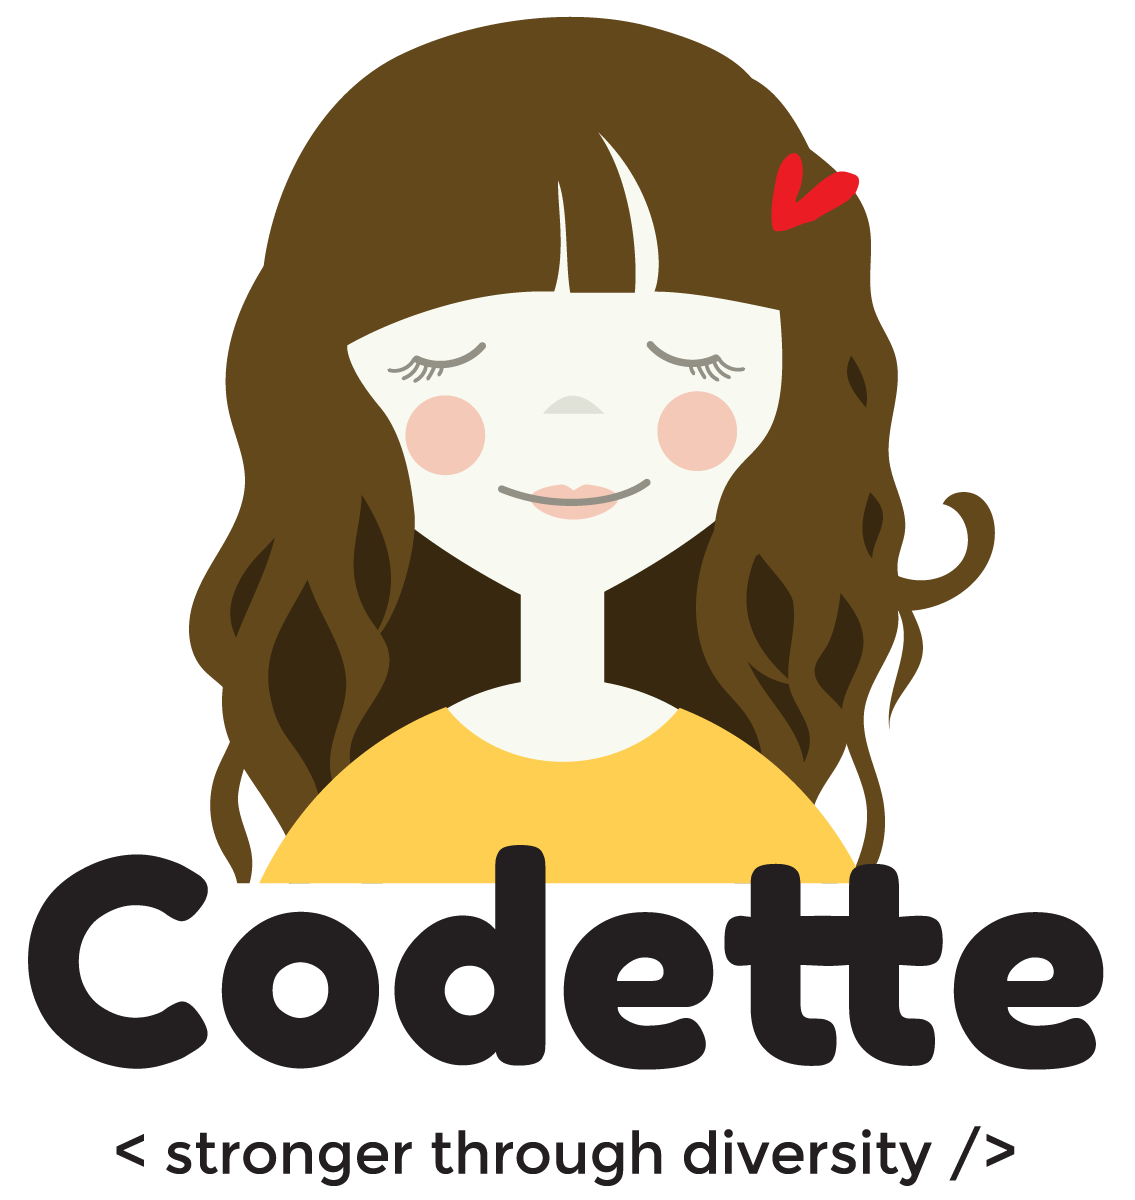 jsleague codette community